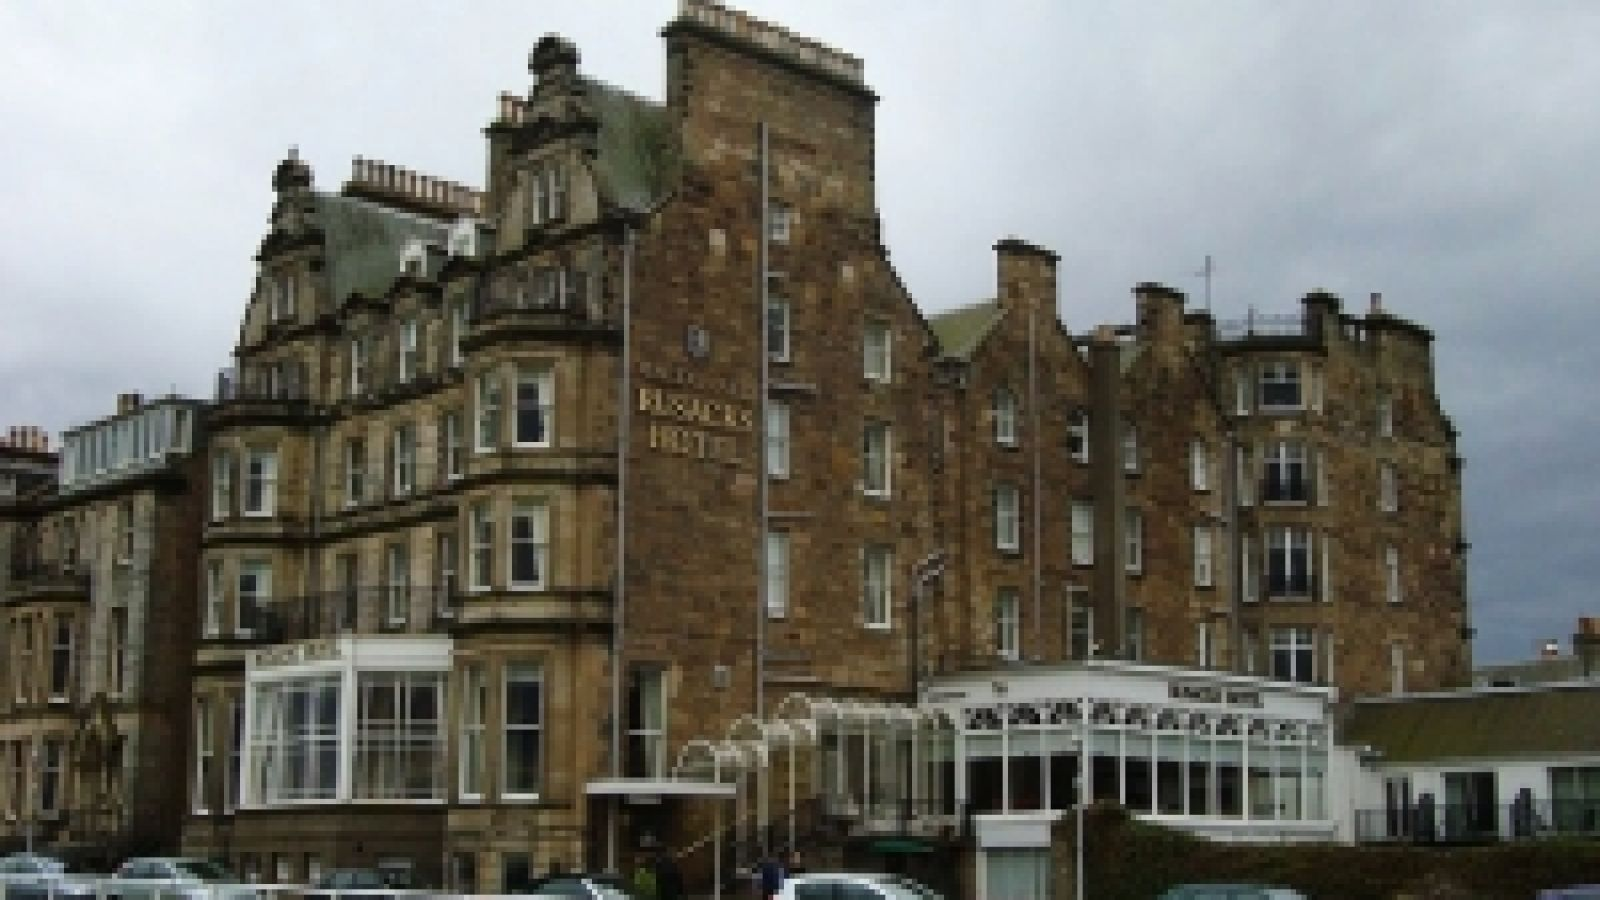 Macdonald Rusacks Hotel - Scotland golf packages